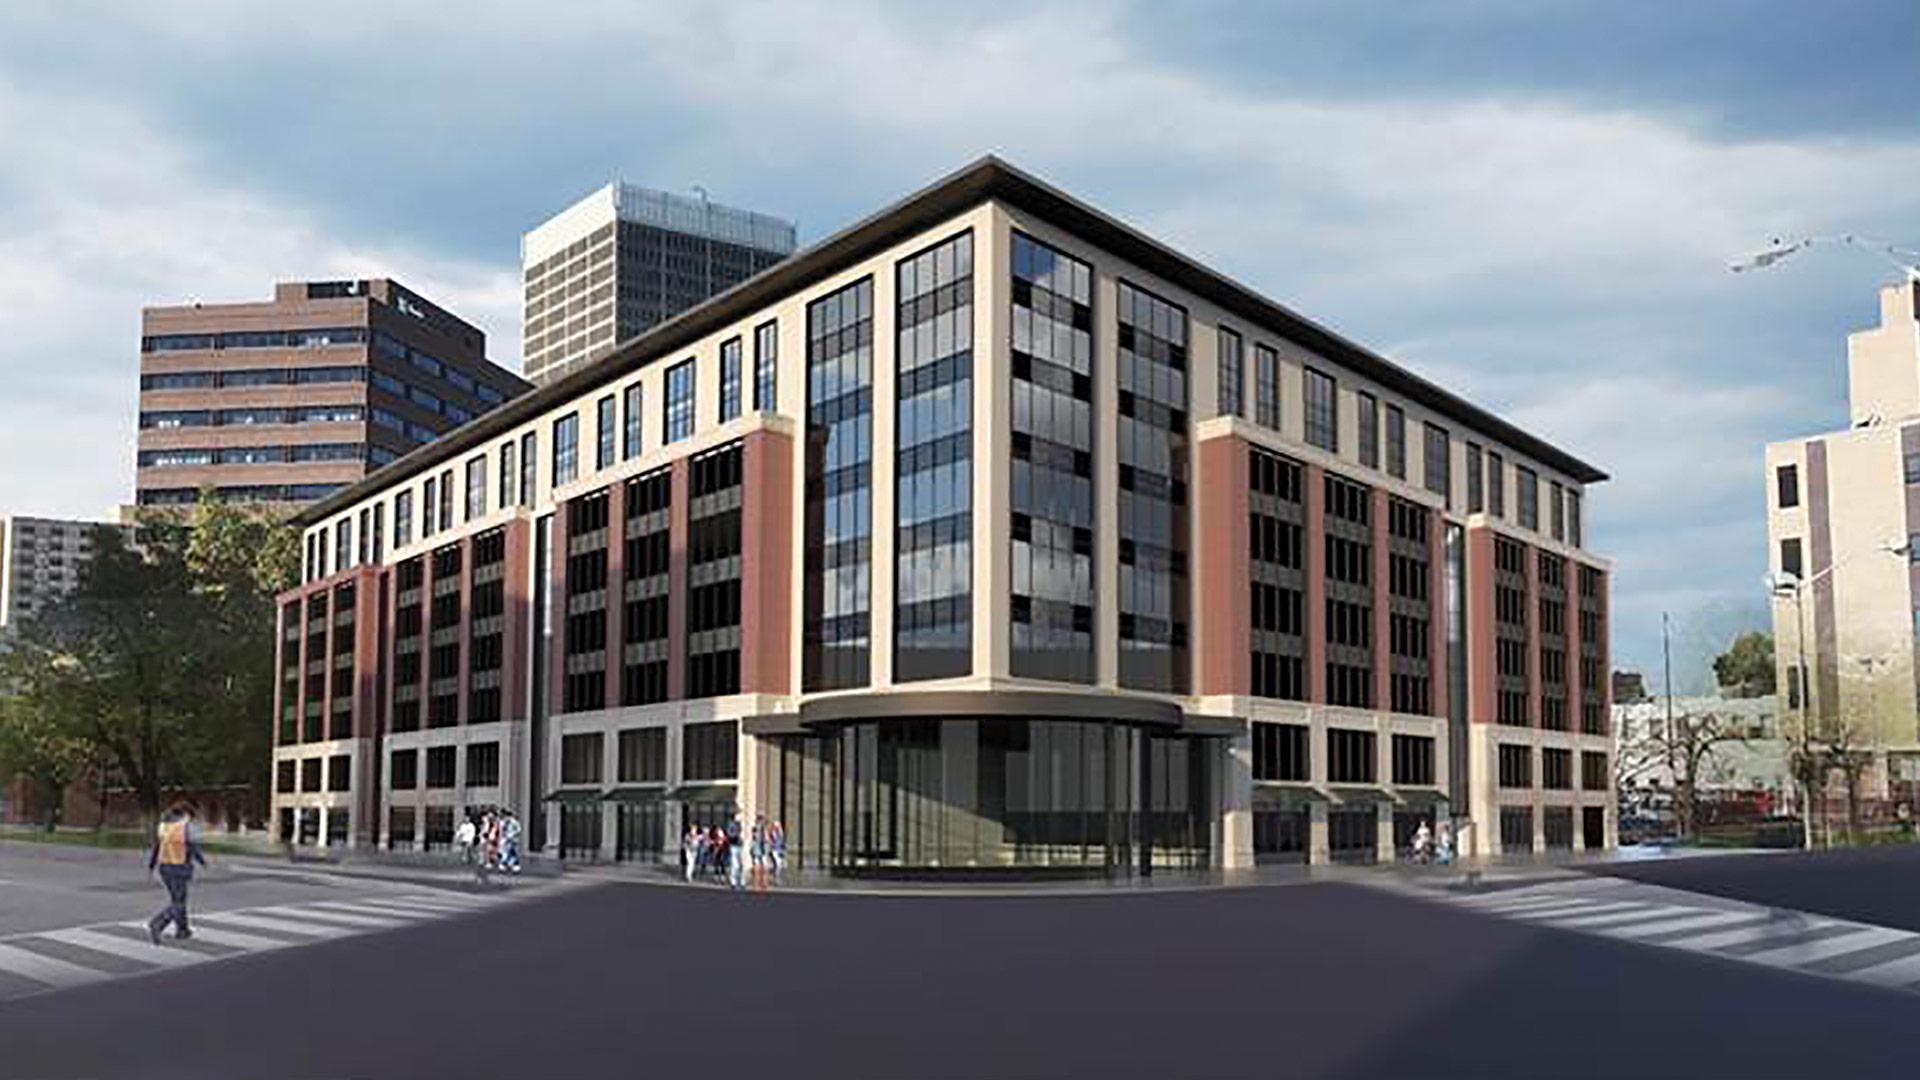 An architect's rendering of a proposed new parking garage